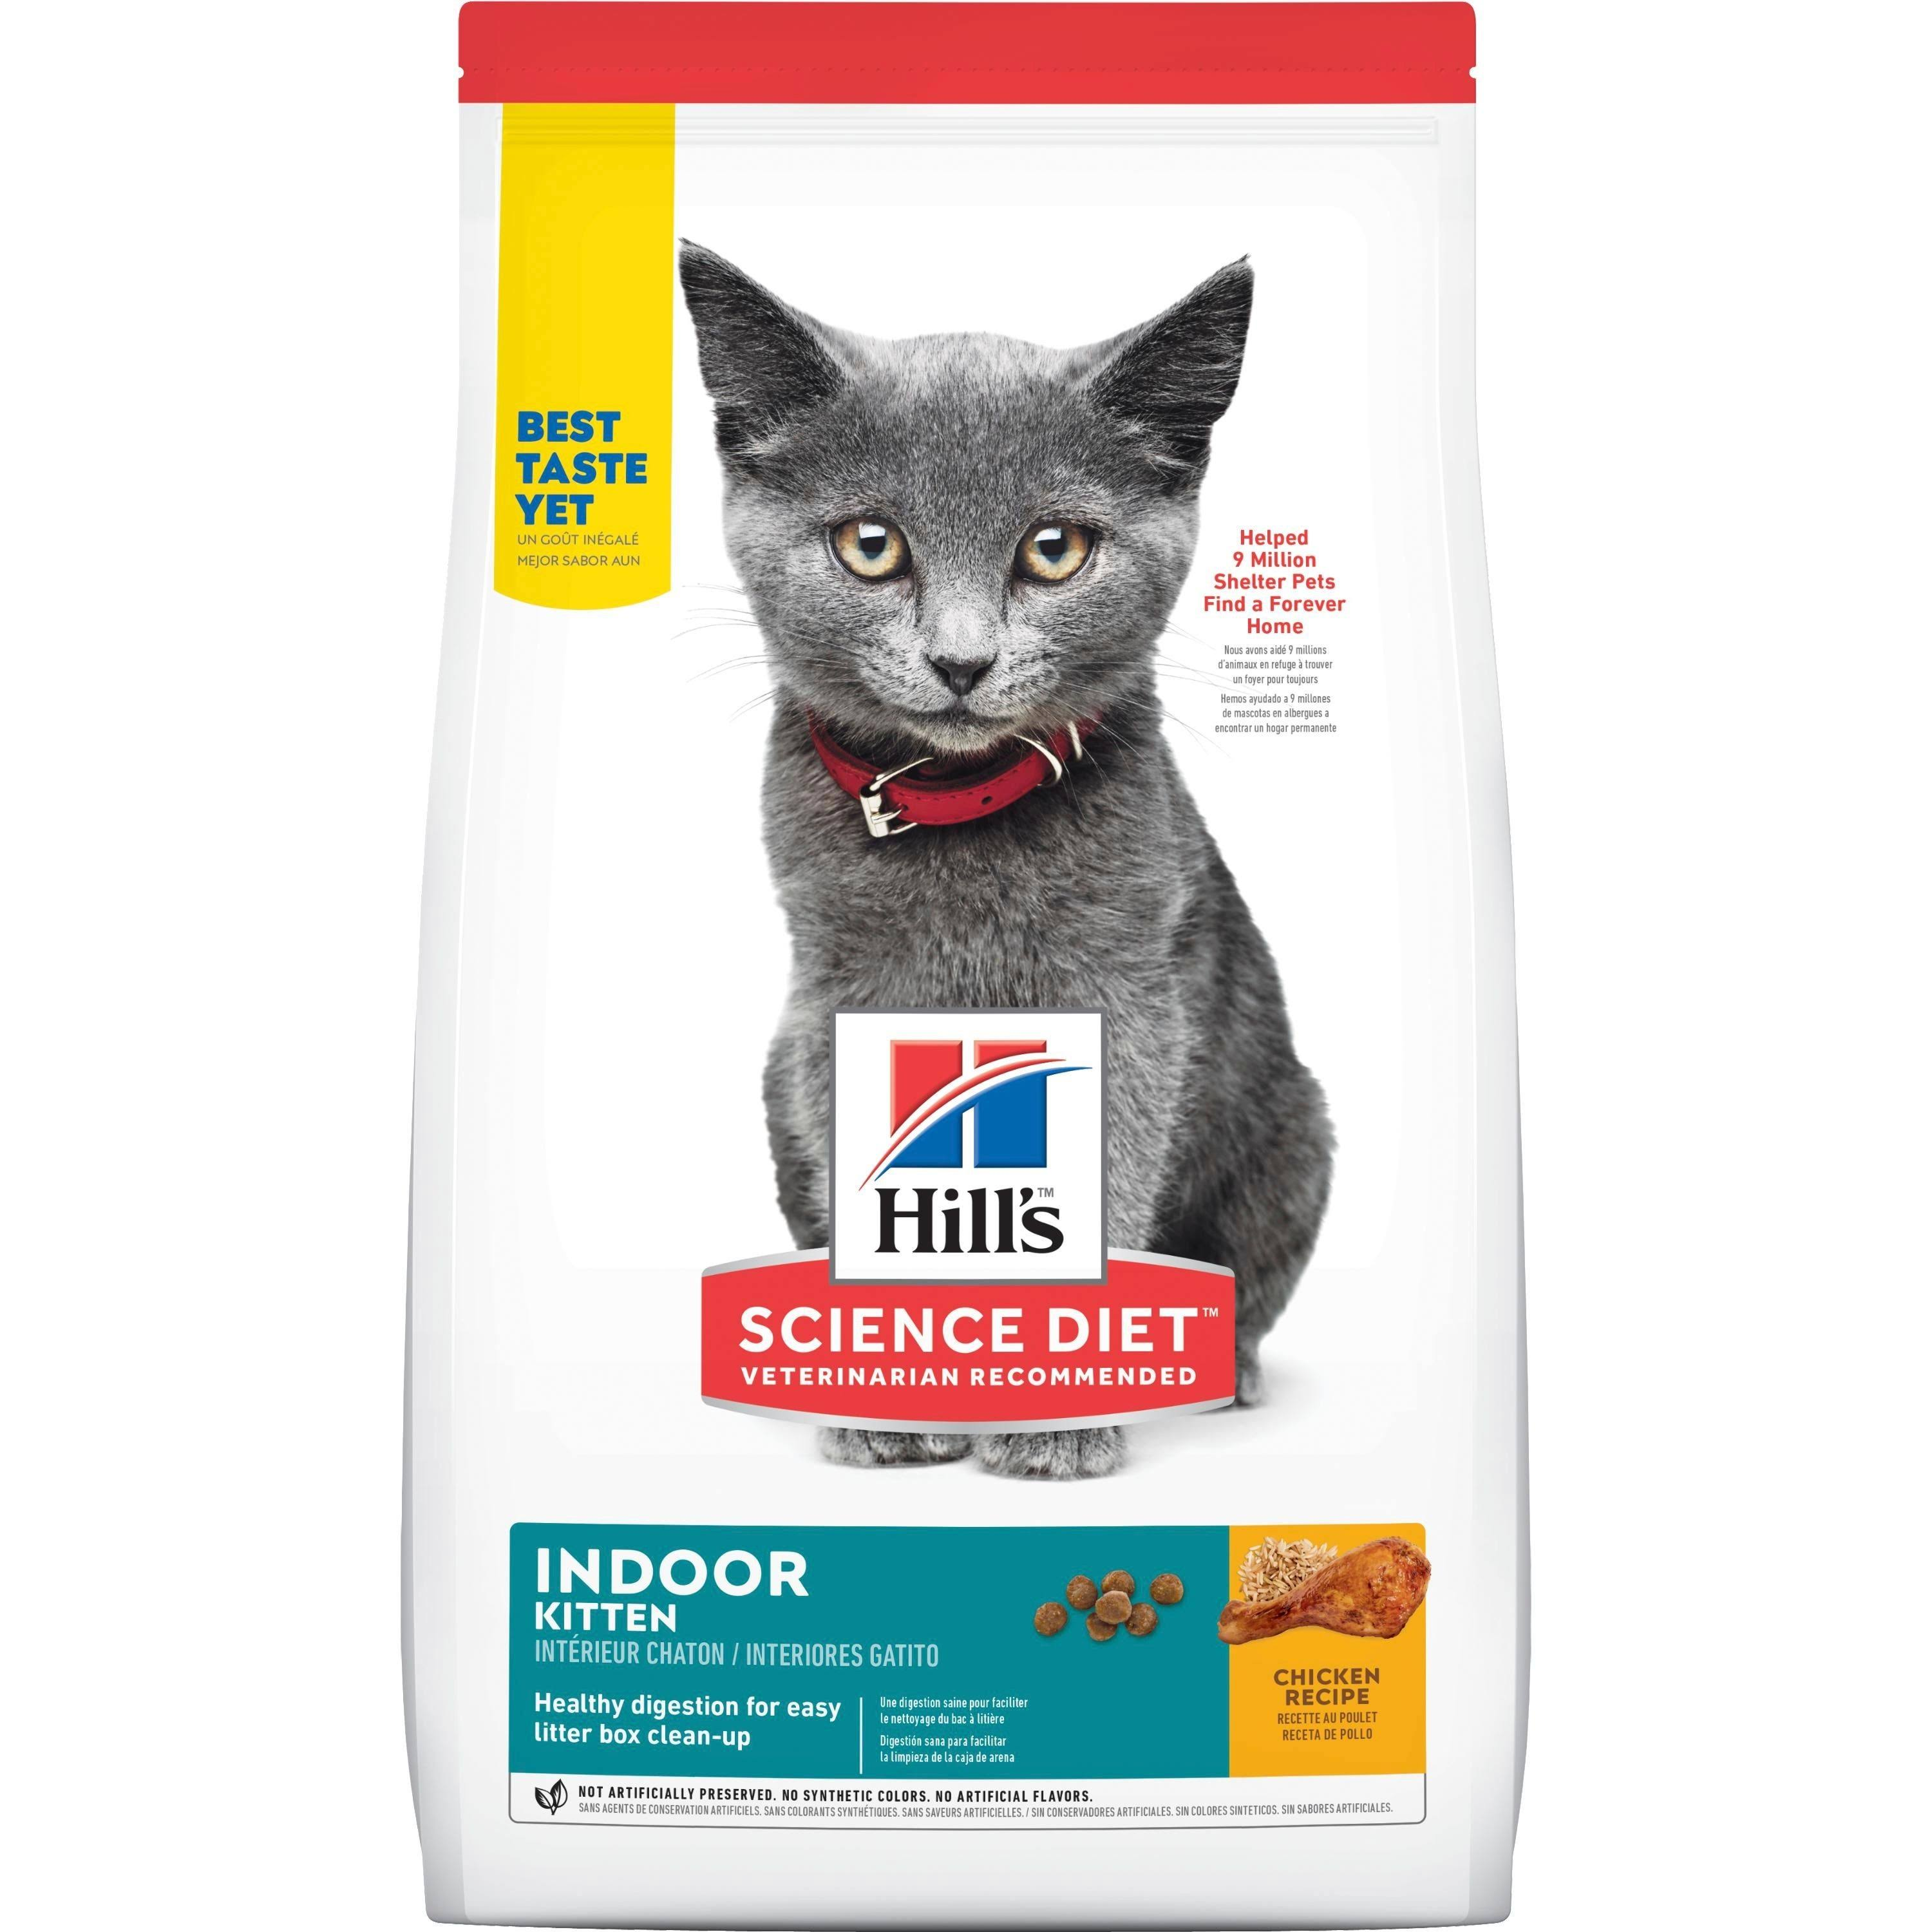 Hill's Science Diet Kitten Indoor Premium Natural Cat Food - Chicken Recipe, 7lb